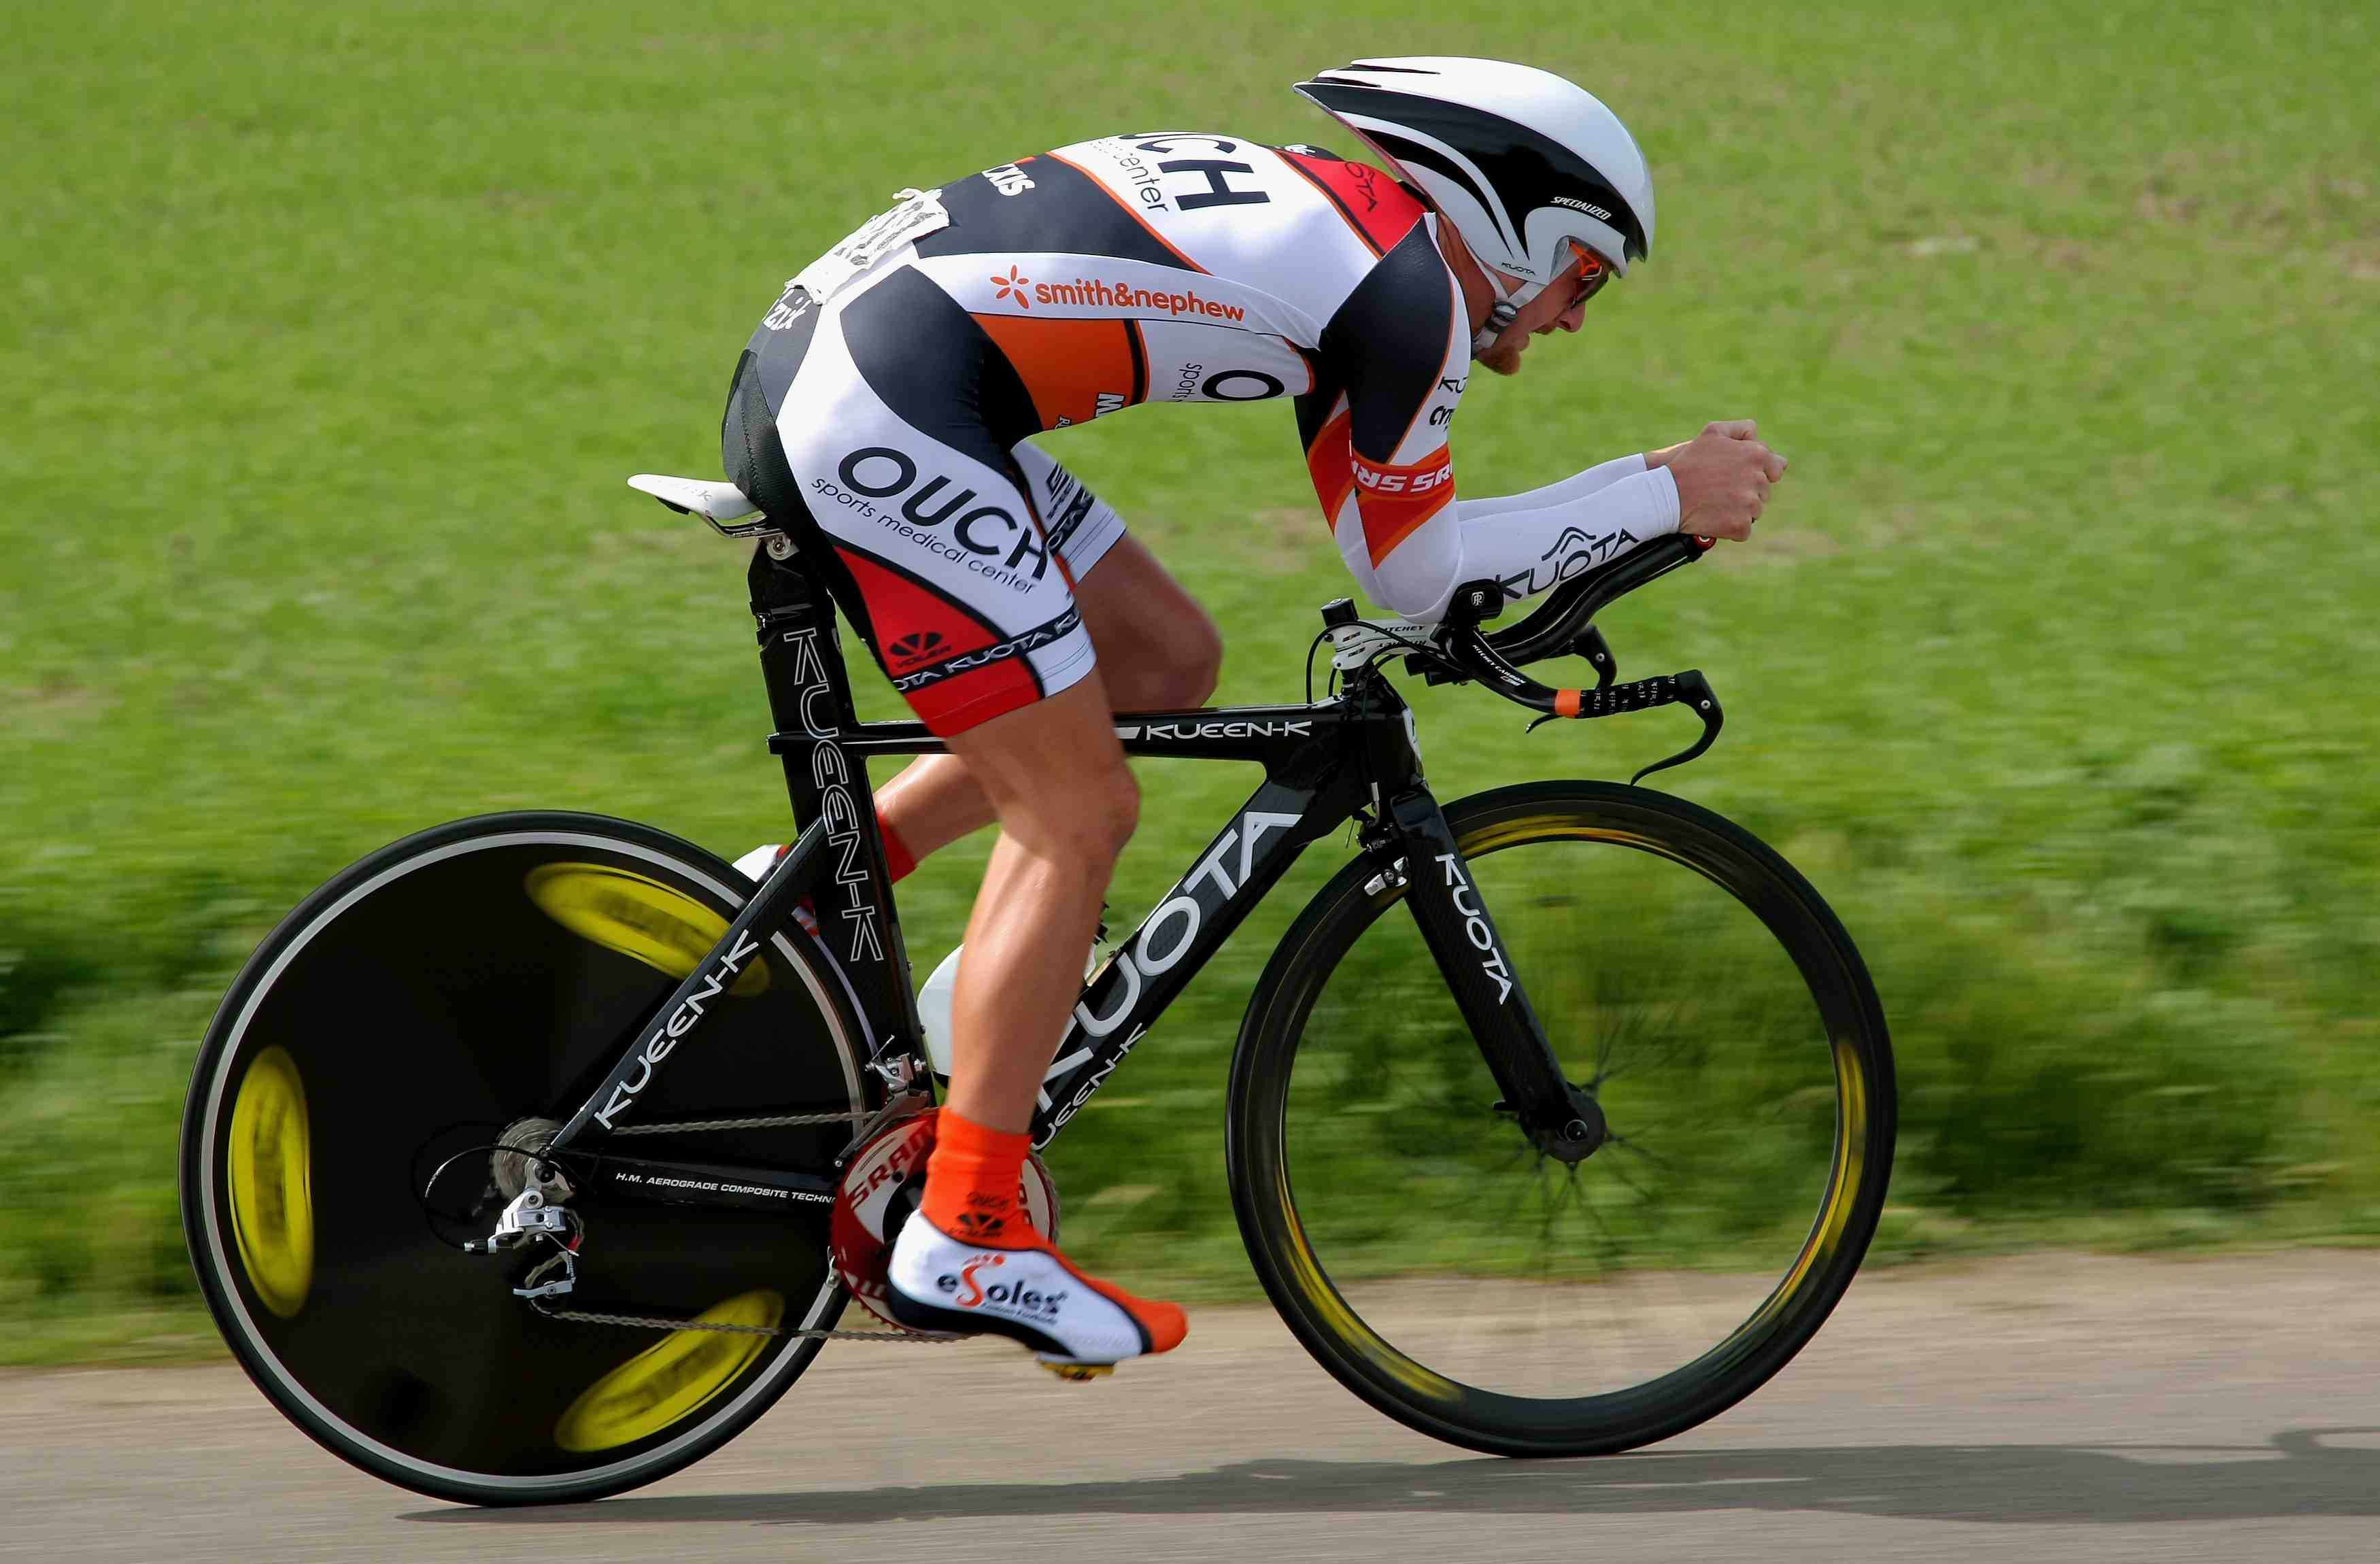 Floyd Landis during the 2009 Tour of California time trial in Solvang.